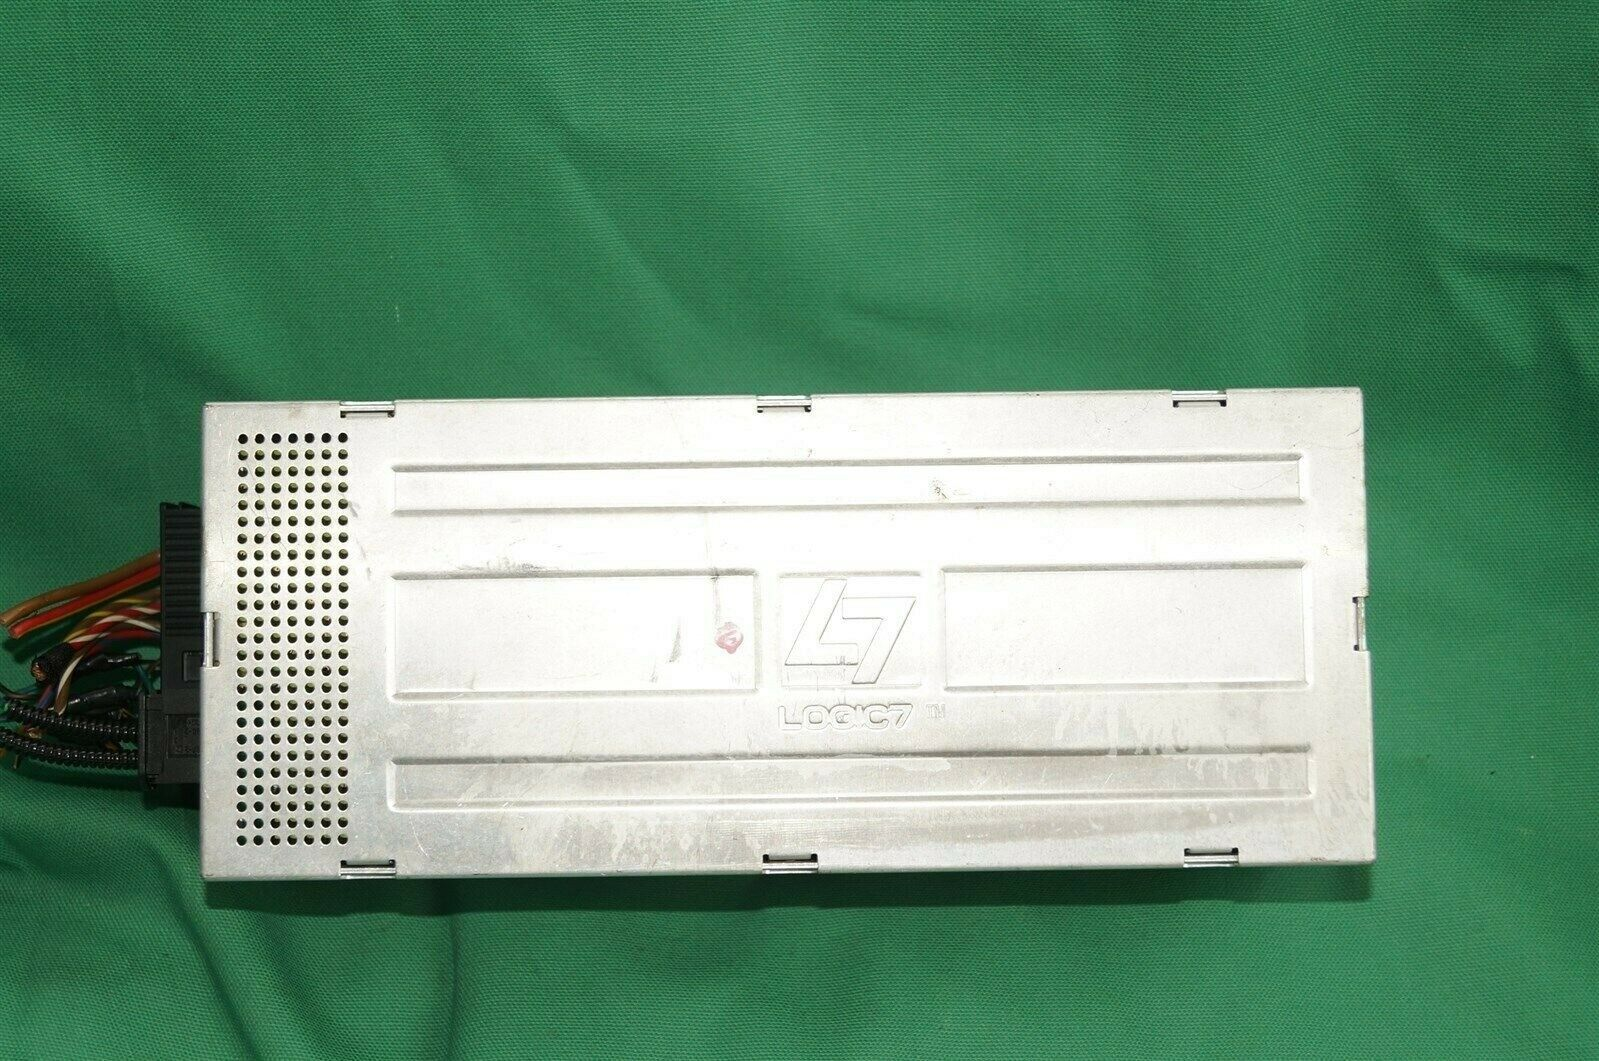 BMW Top Hifi DSP Logic 7 Amplifier Amp 65.12-6 922 807 Herman Becker